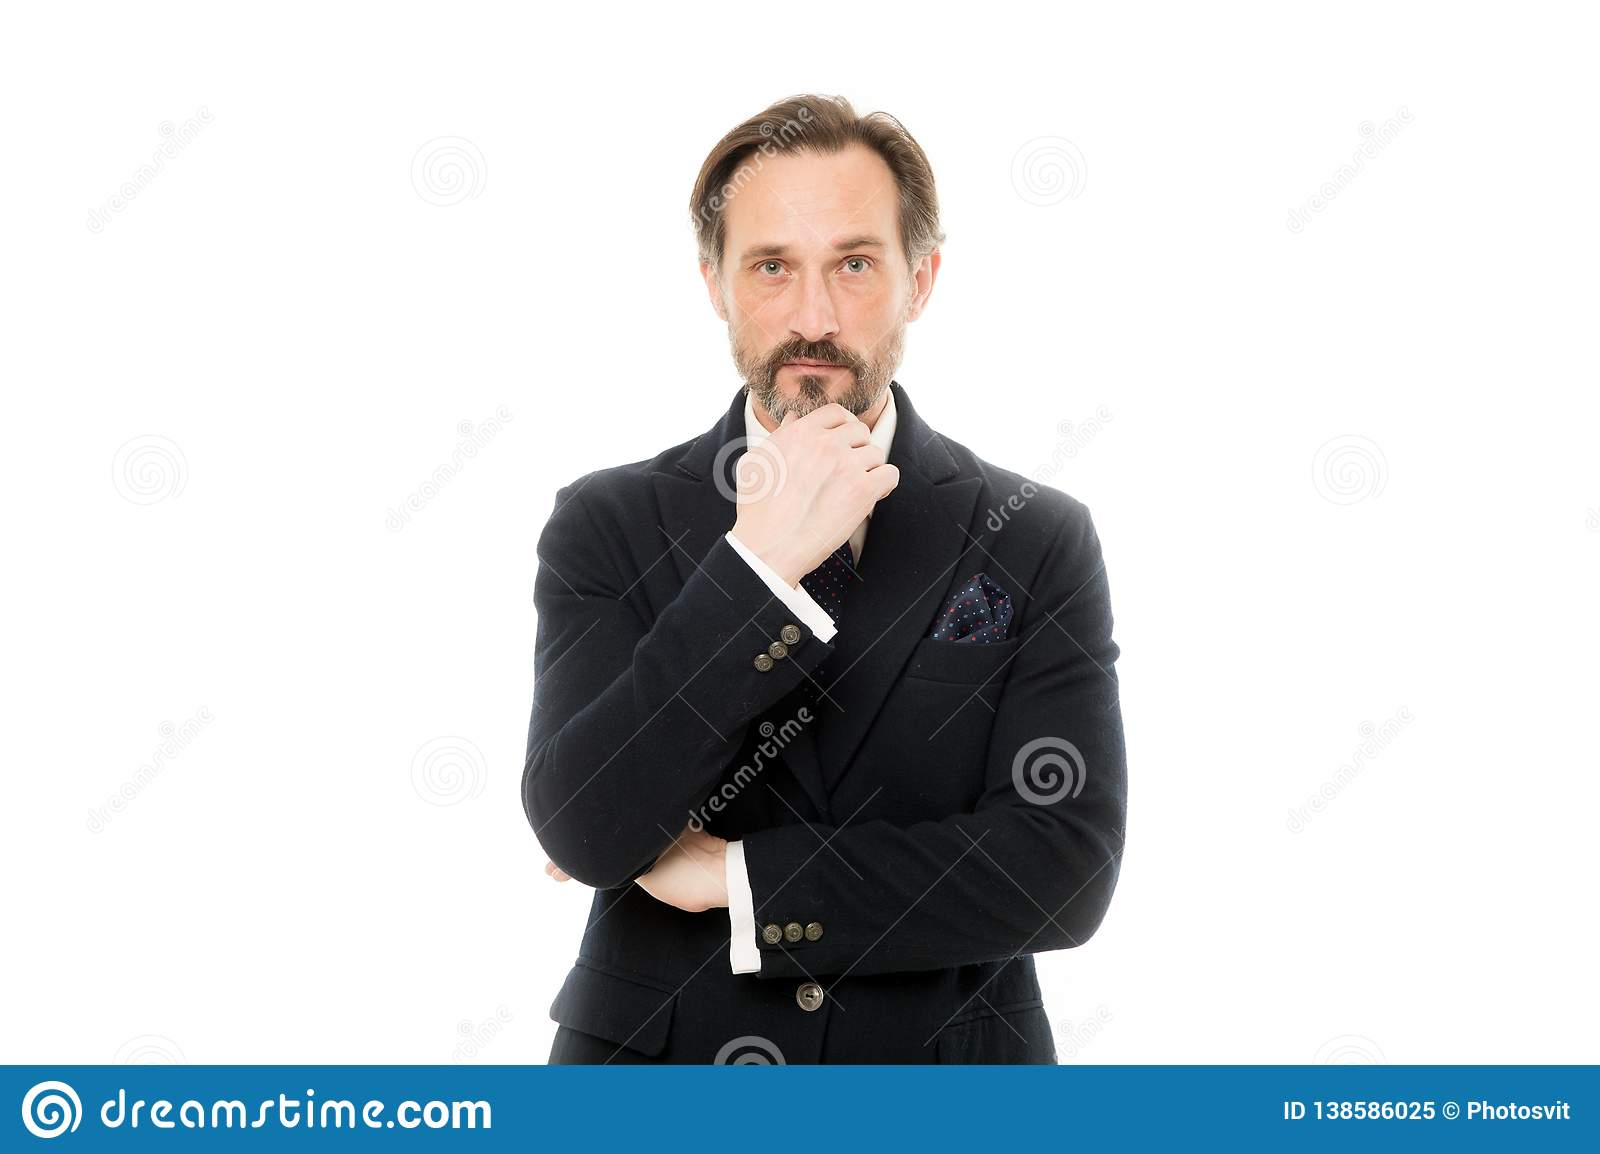 Man handsome mature fashion model wear fashionable suit on white background. Bespoke suit flatters every wearer. Perfect